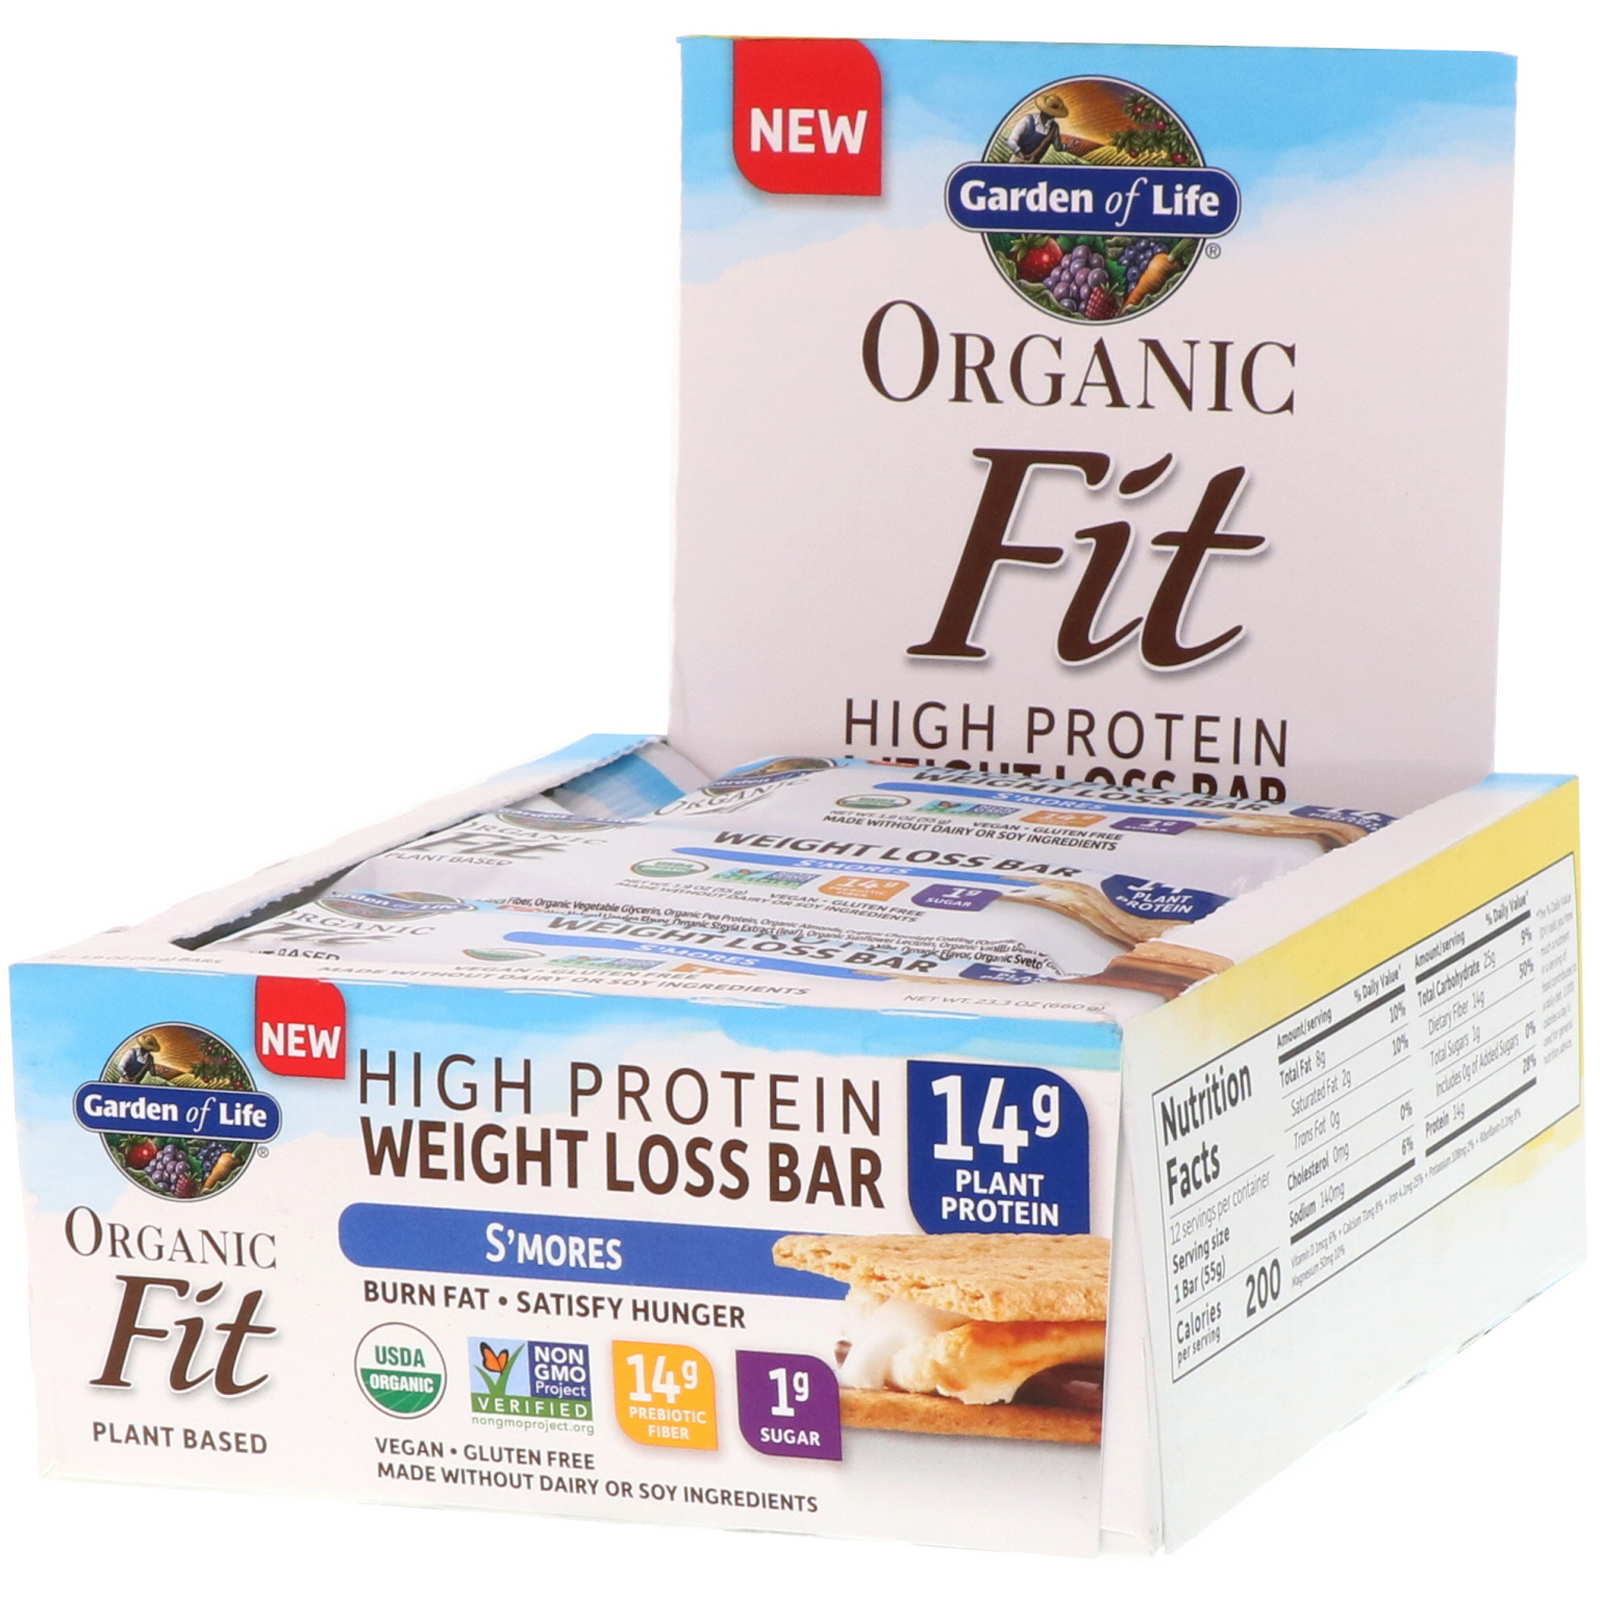 Garden Of Life Organic Fit High Protein Weight Loss Bar S Mores 12 Bars 1 9 Oz 55 G Each Iherb